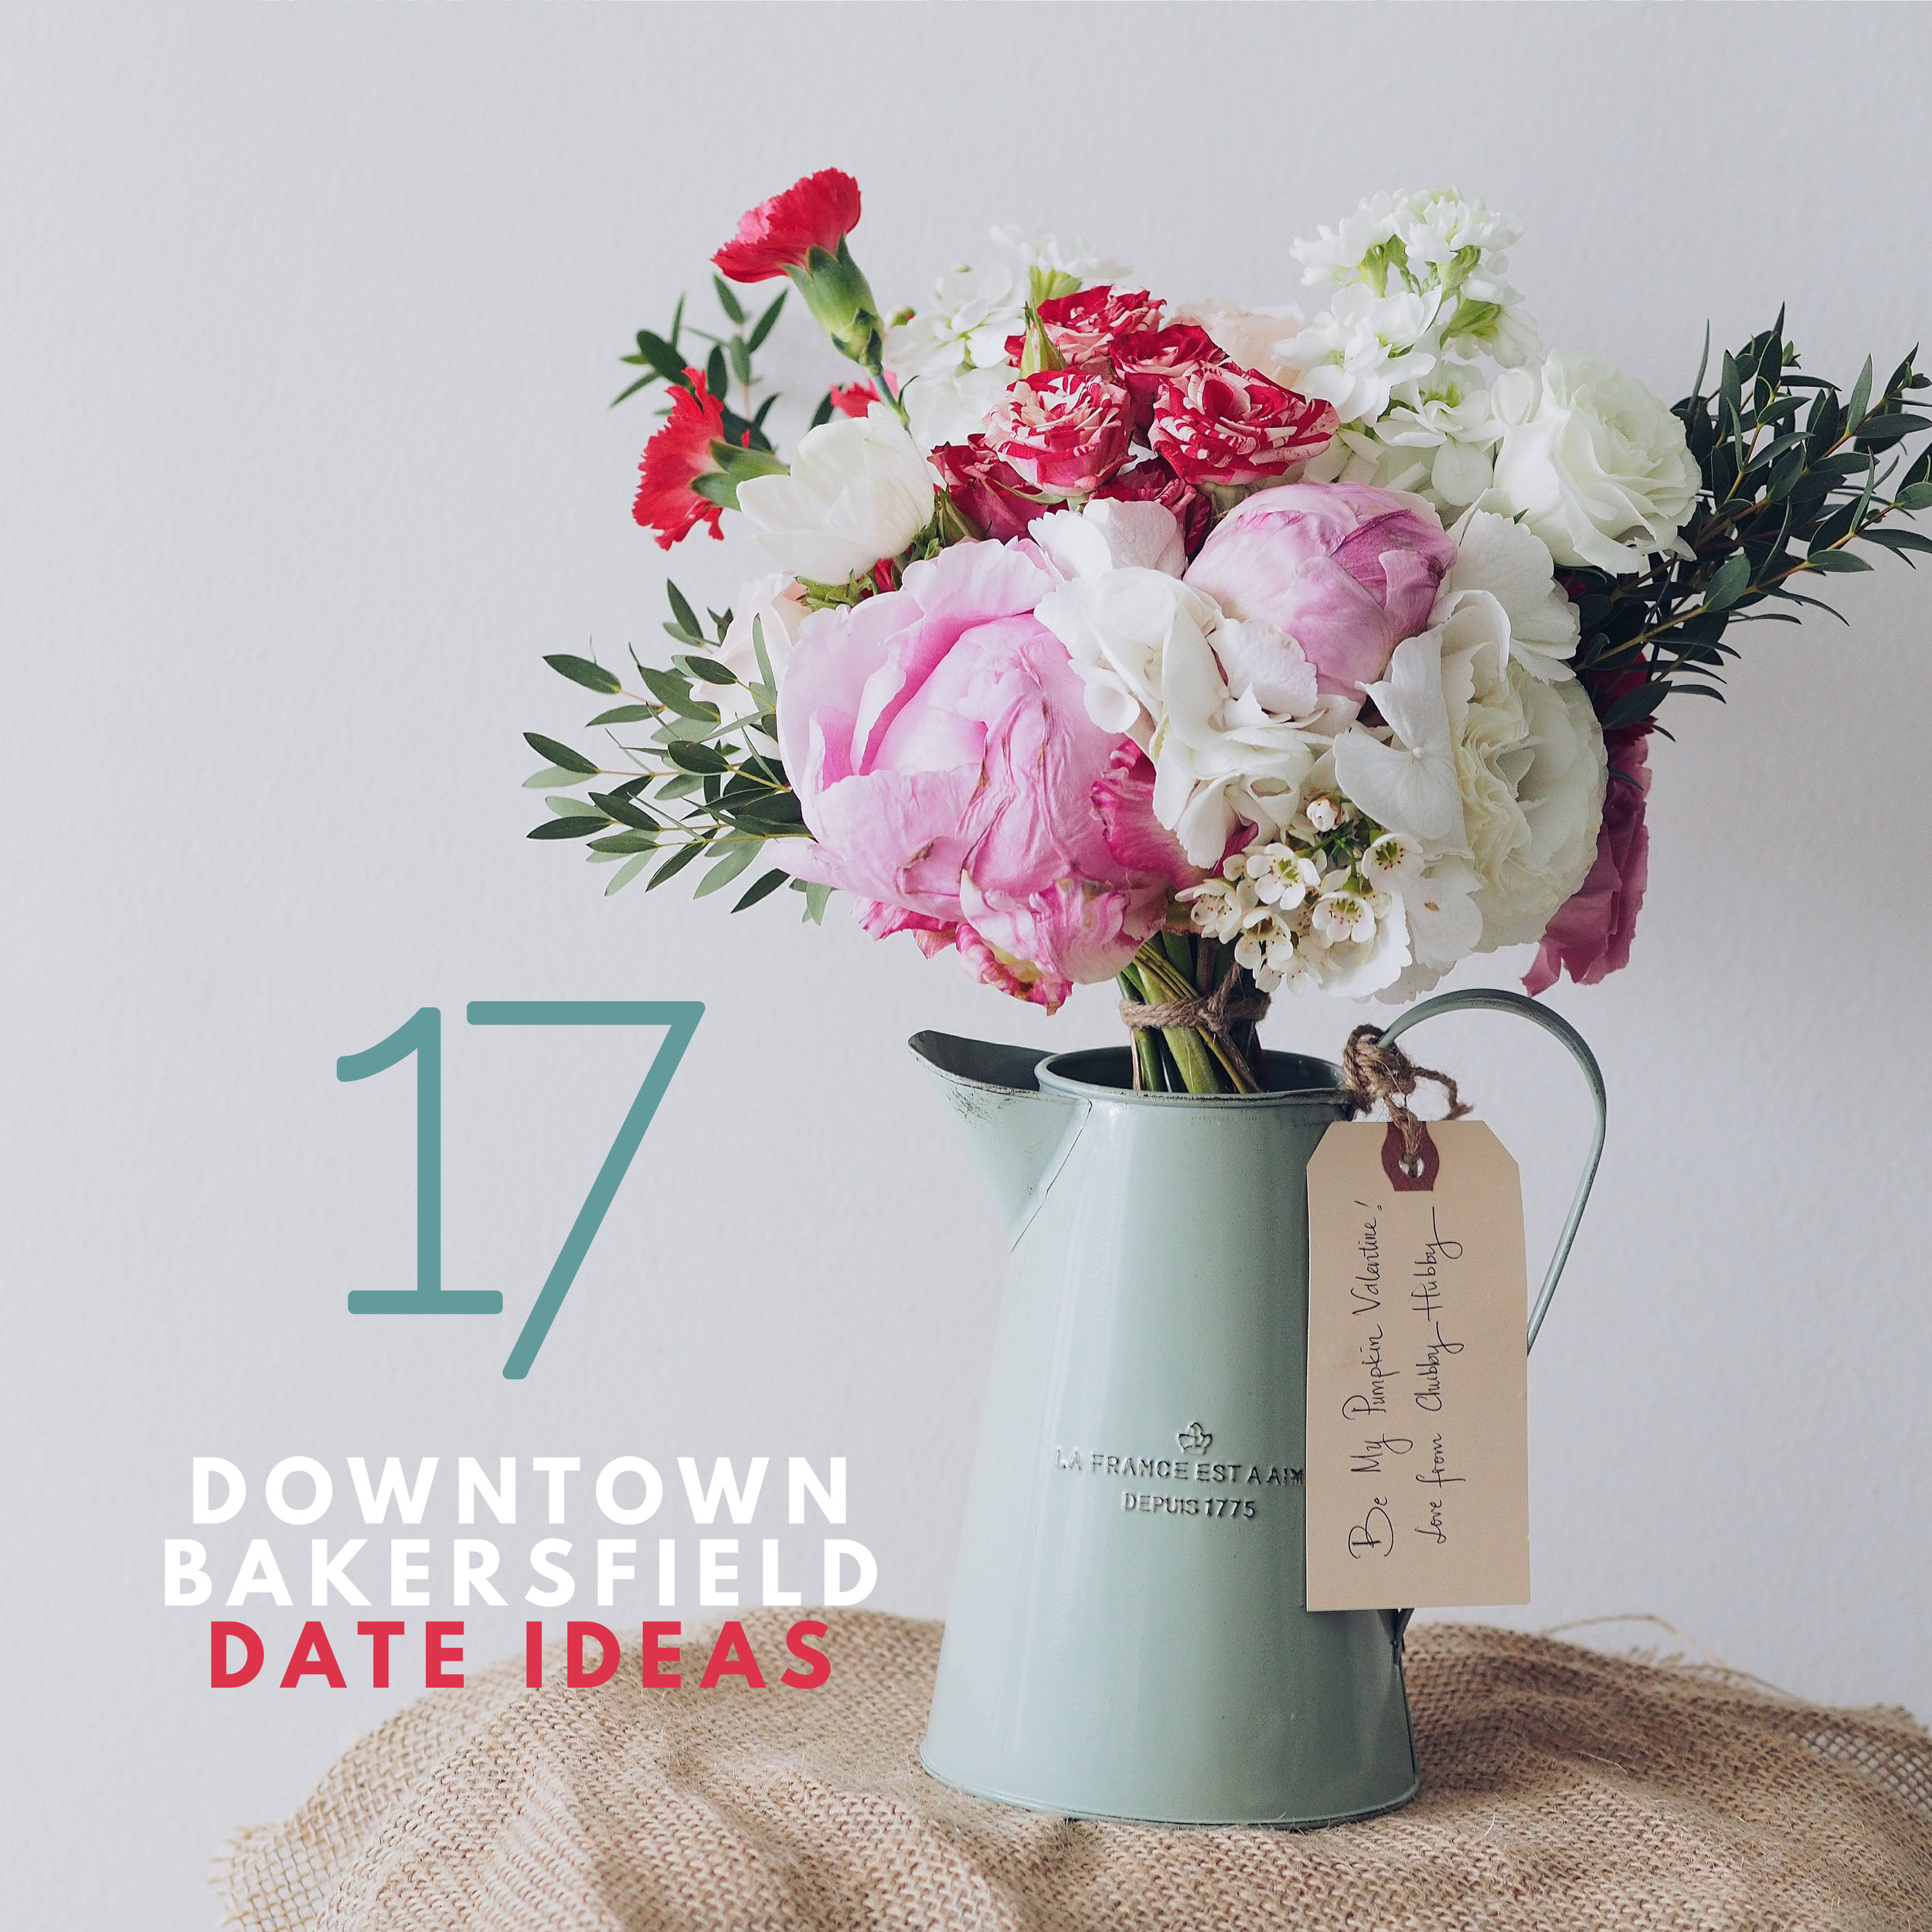 17 Date Ideas in Downtown Bakersfield - Looking for a place to go or something to do with your Valentine? 17th Place Townhomes has you covered! These downtowners have put together a great list of 17 date ideas in downtown Bakersfield to celebrate the month of L.O.V.E.